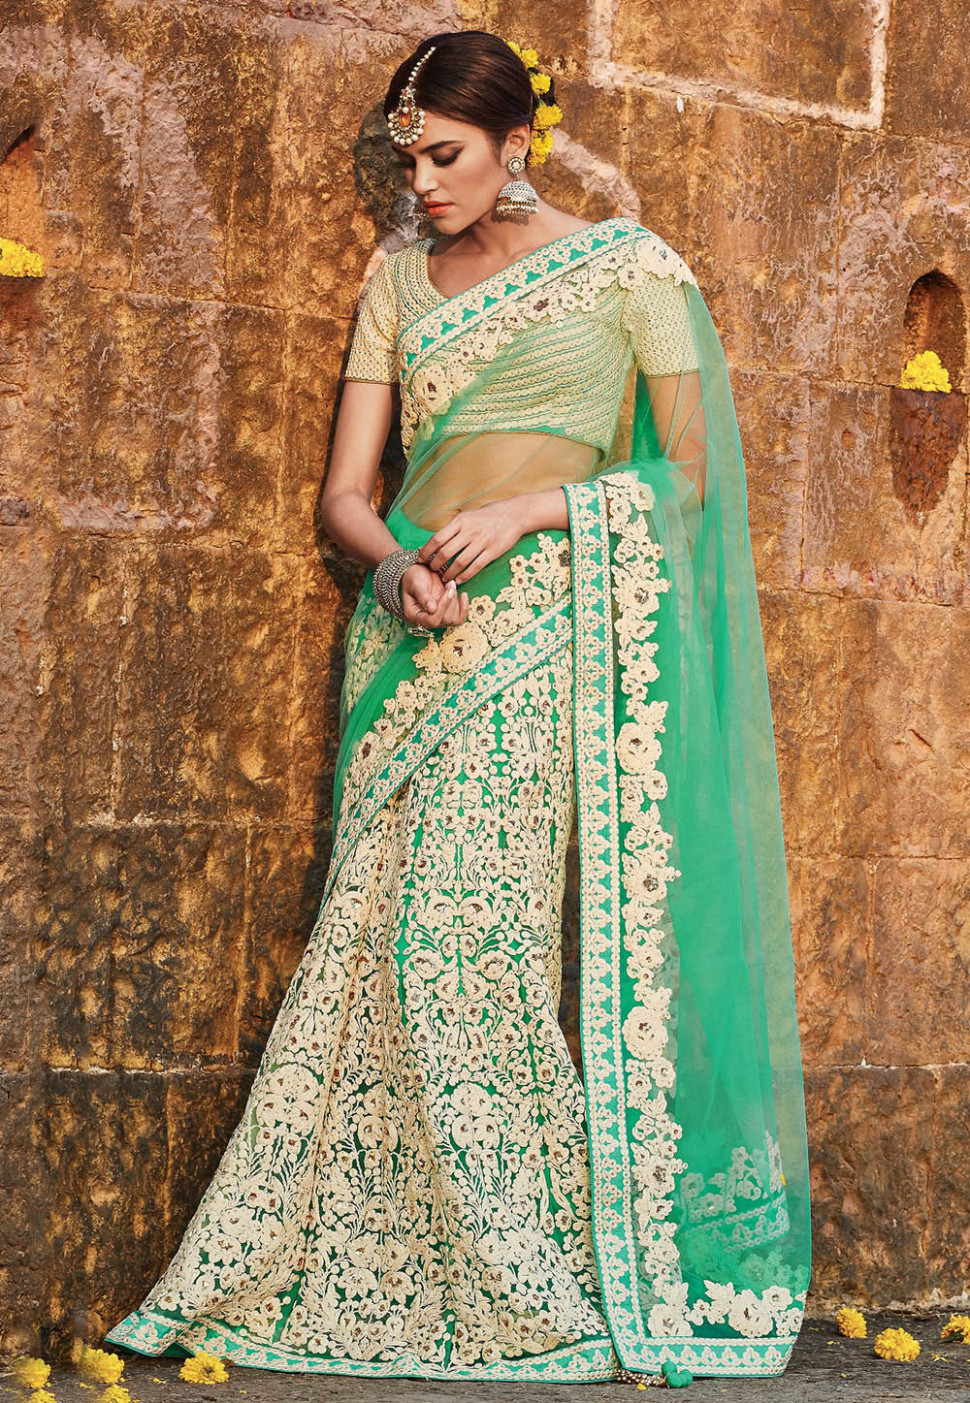 12 Indian Bridal Lehenga Style Sarees For The Modern